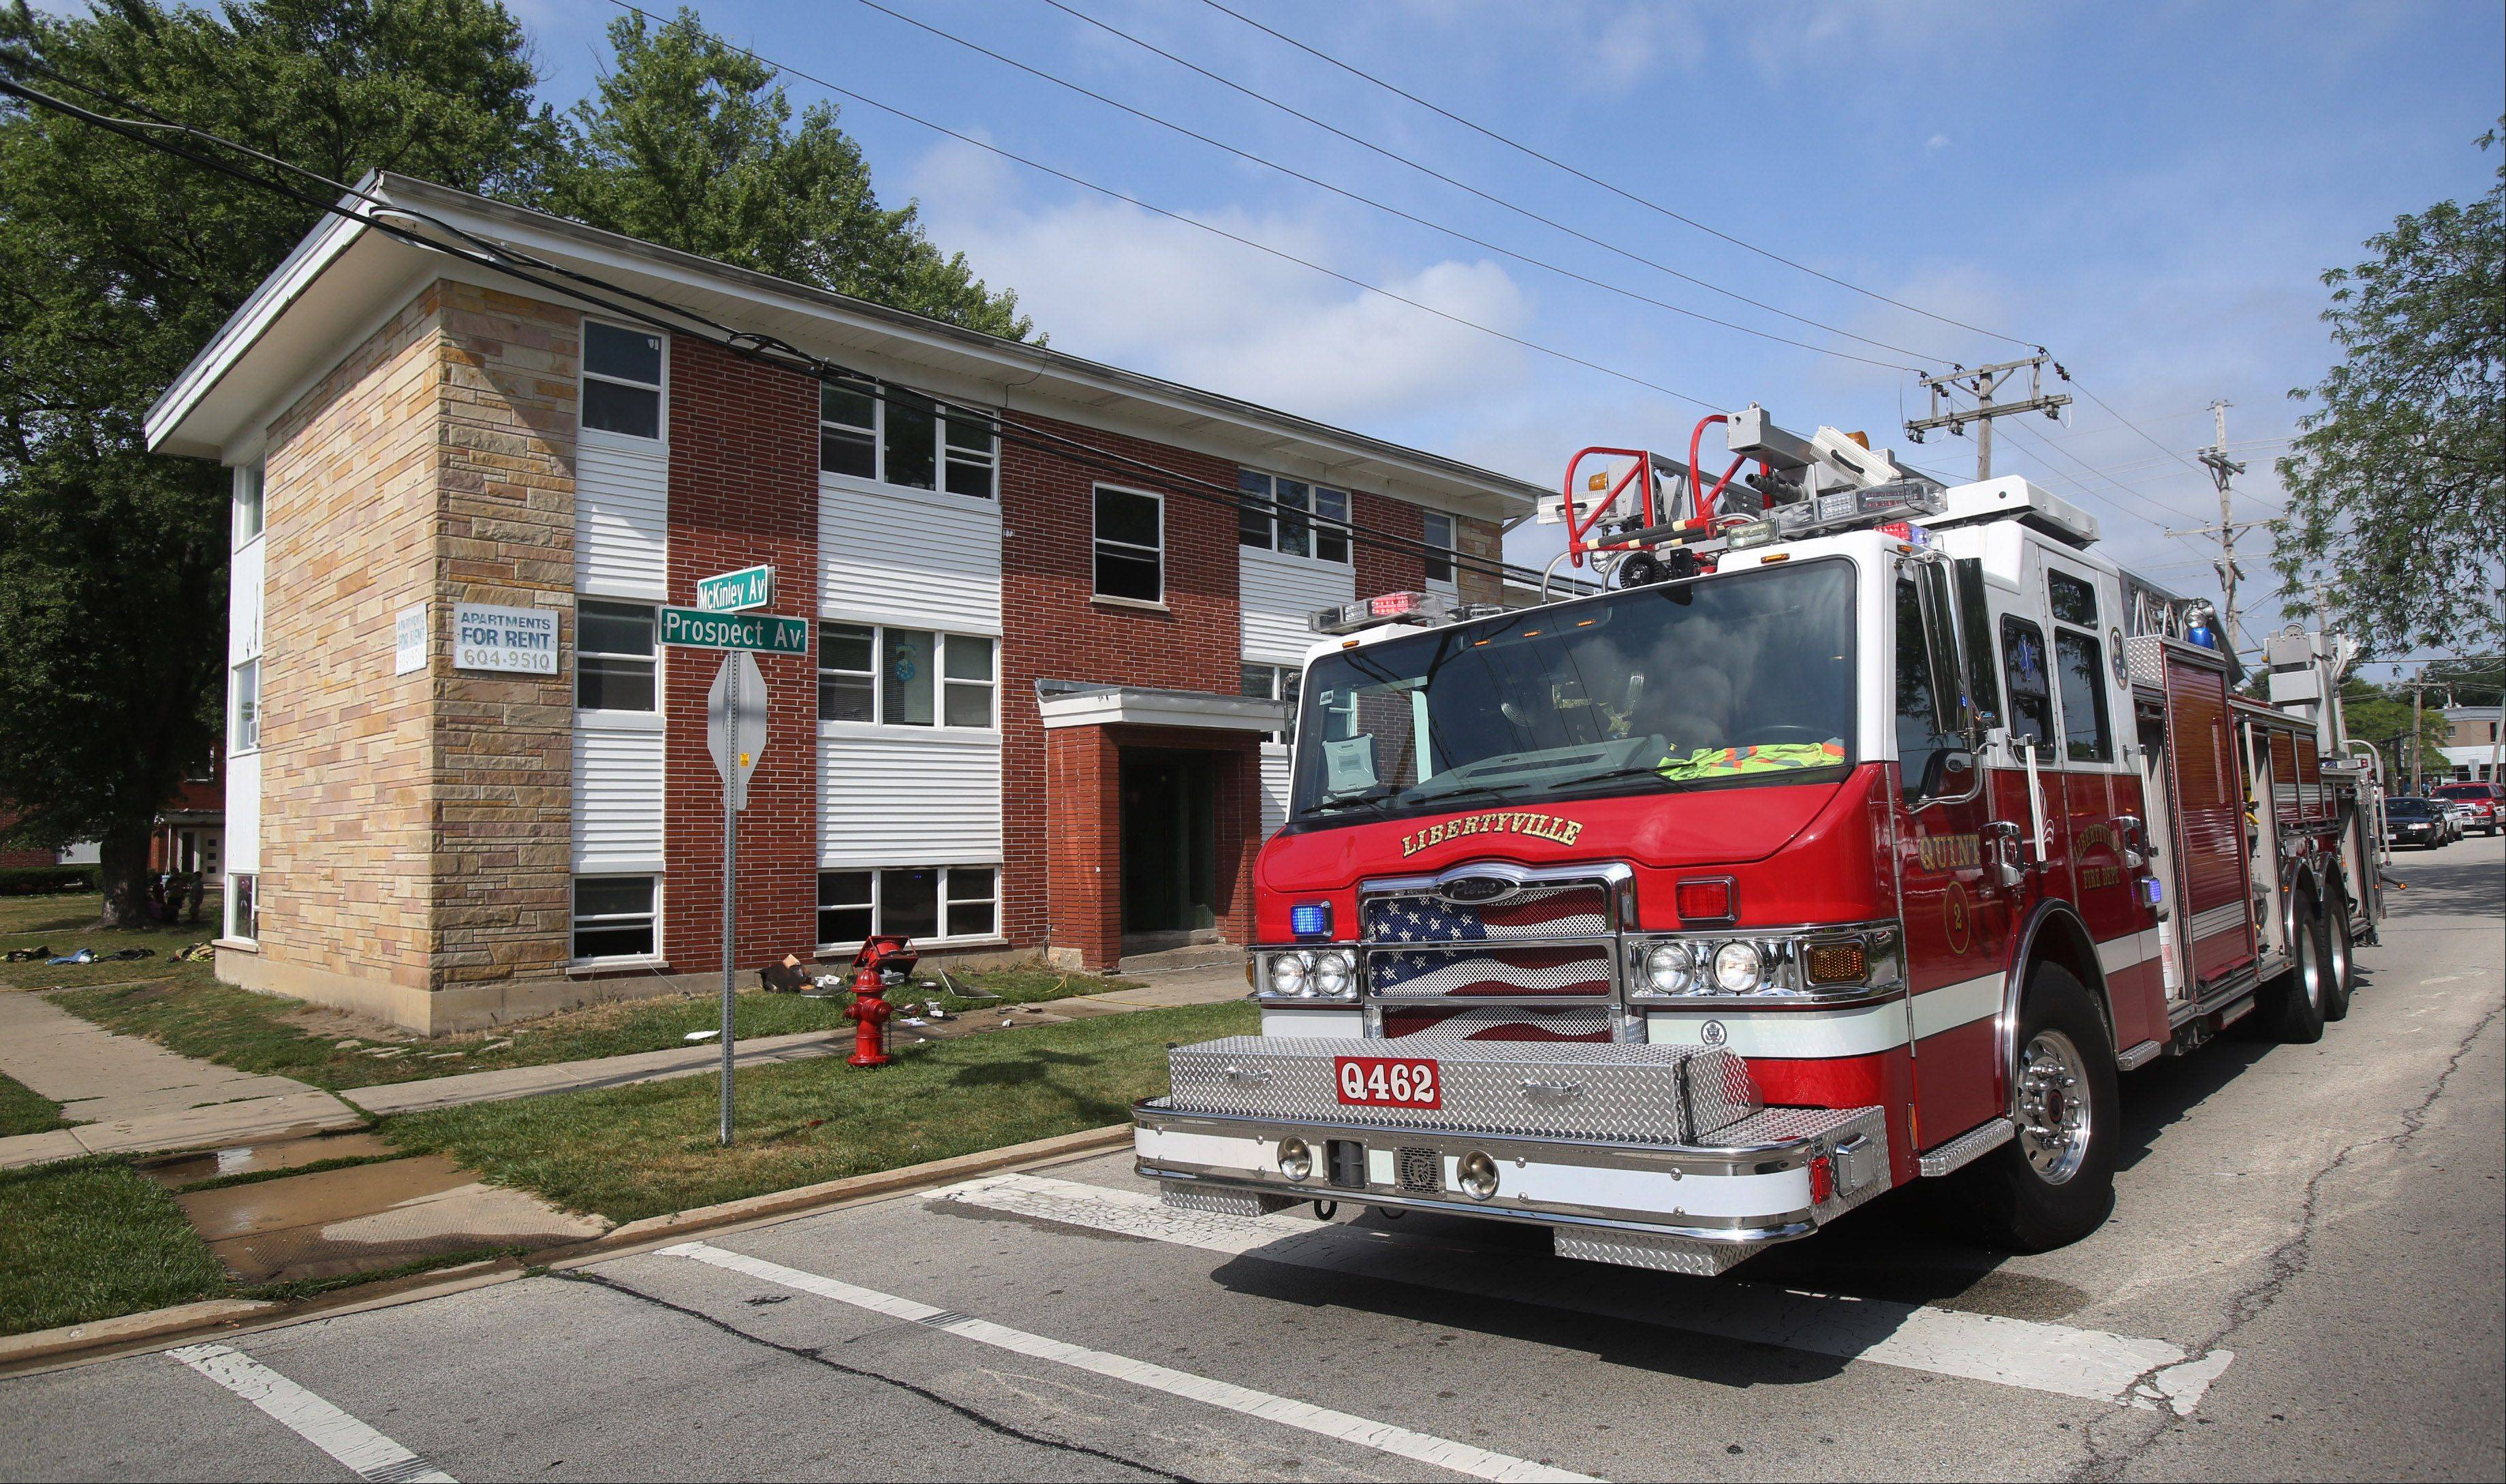 Mundelein firefighters were called to the McKinley Gardens apartments in the 500 block of McKinley Avenue at 9:18 a.m. Sunday in response to a fire in a basement unit of the building. All of the building's occupants got out, but one resident was checked at the scene for smoke inhalation, said Mundelein Fire Batallion Chief Matt Carey.